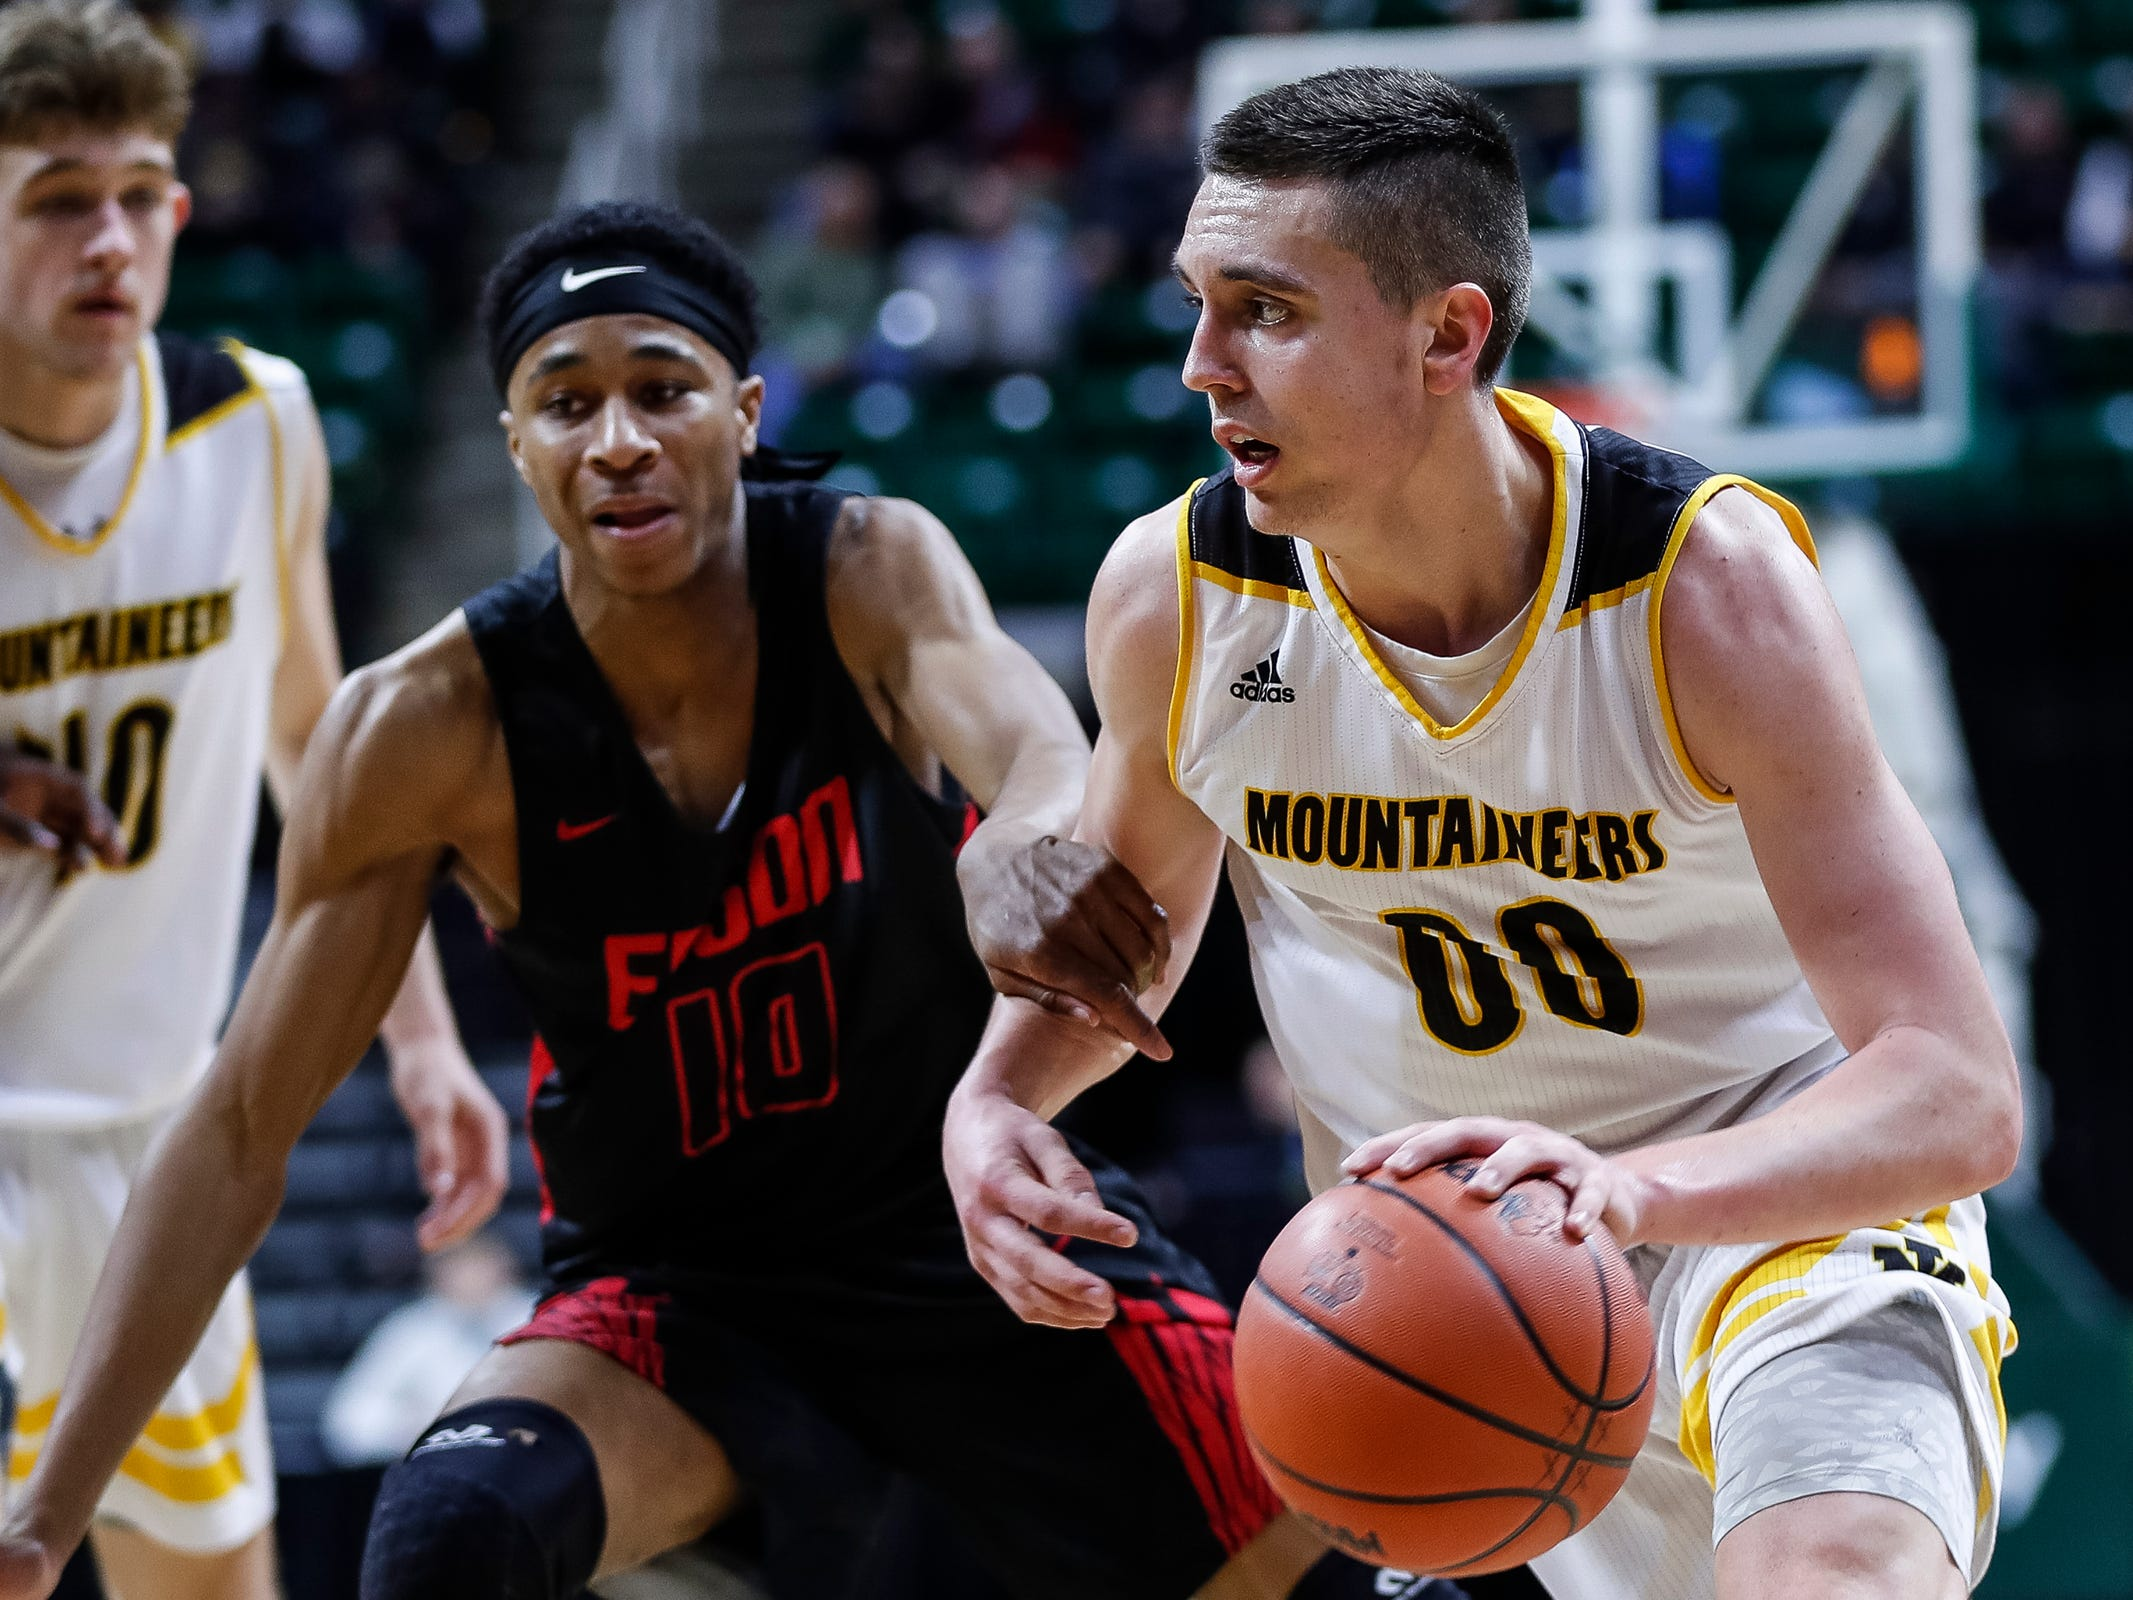 Iron Mountain's Foster Wonders dribbles against Detroit Edison's Ralph Bland during the first half of MHSAA Division 3 semifinal at the Breslin Center in East Lansing, Thursday, March 14, 2019.